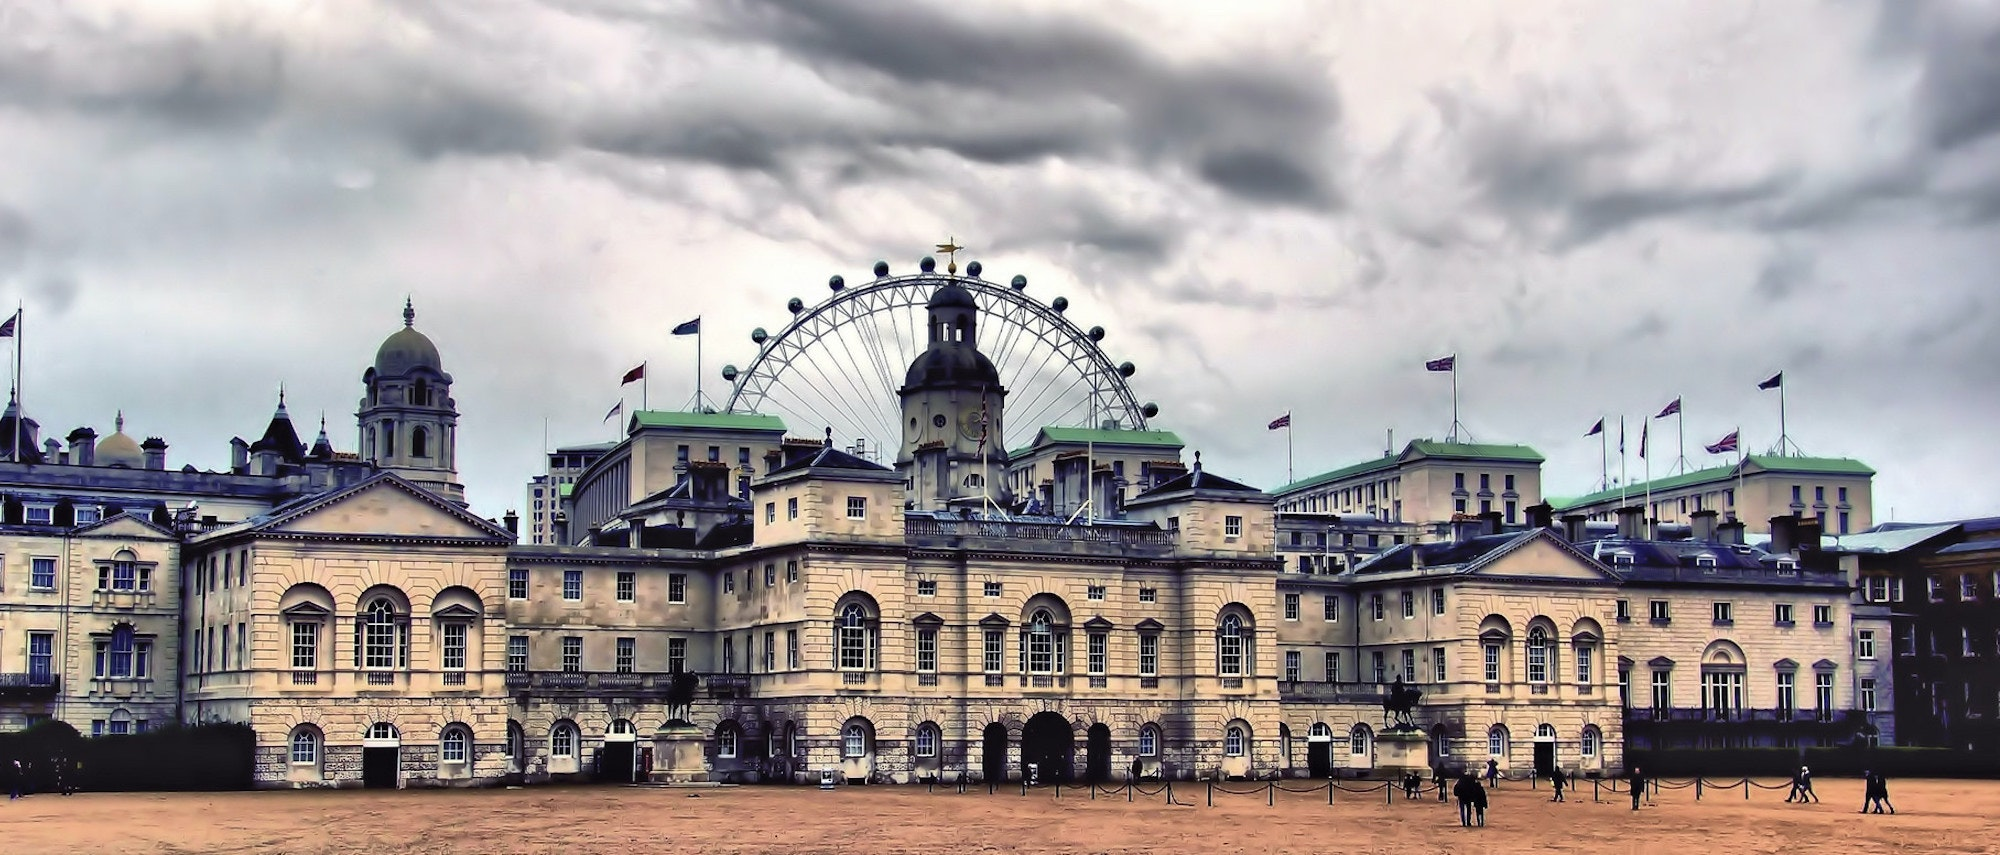 12 Of The Best Places To Visit In London For Free The